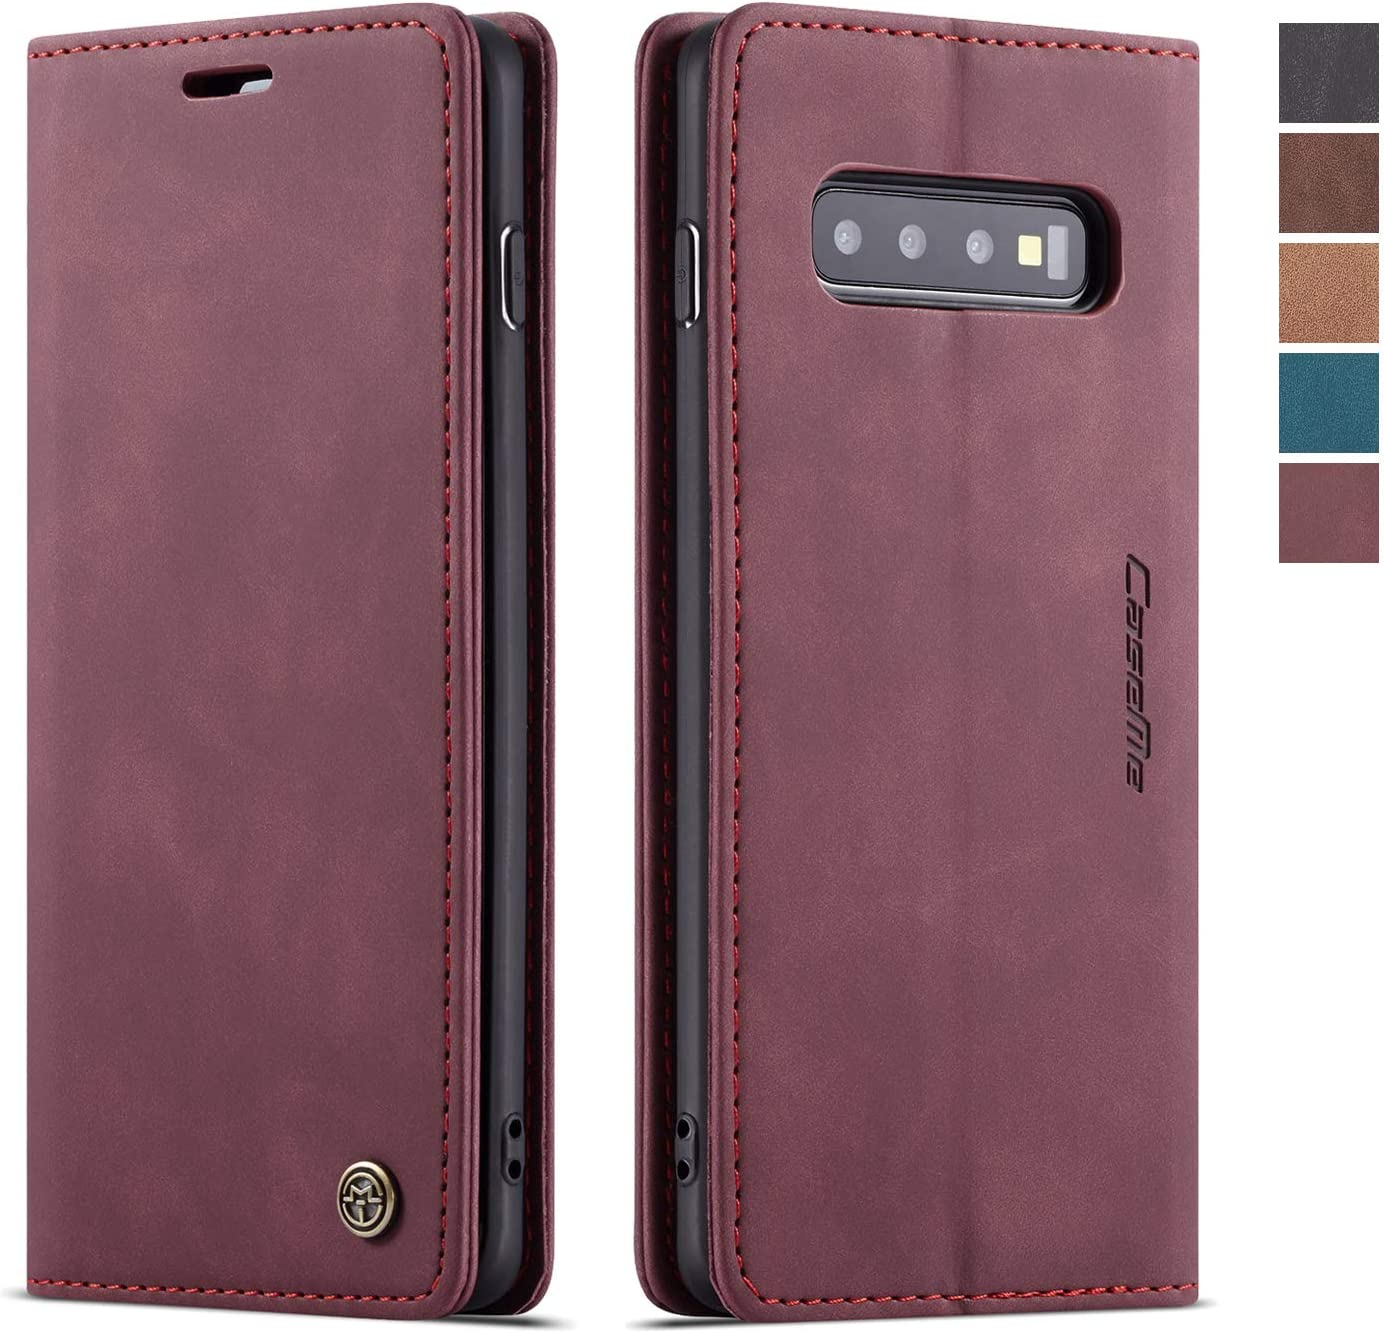 Samsung Galaxy S10 Case,Samsung Galaxy S10 Wallet Case, Magnetic Stand Flip Protective Cover Leather Flip Cover Purse Style with ID & Credit Card Slots Holder Case for Samsung Galaxy S10 (Wine Red)